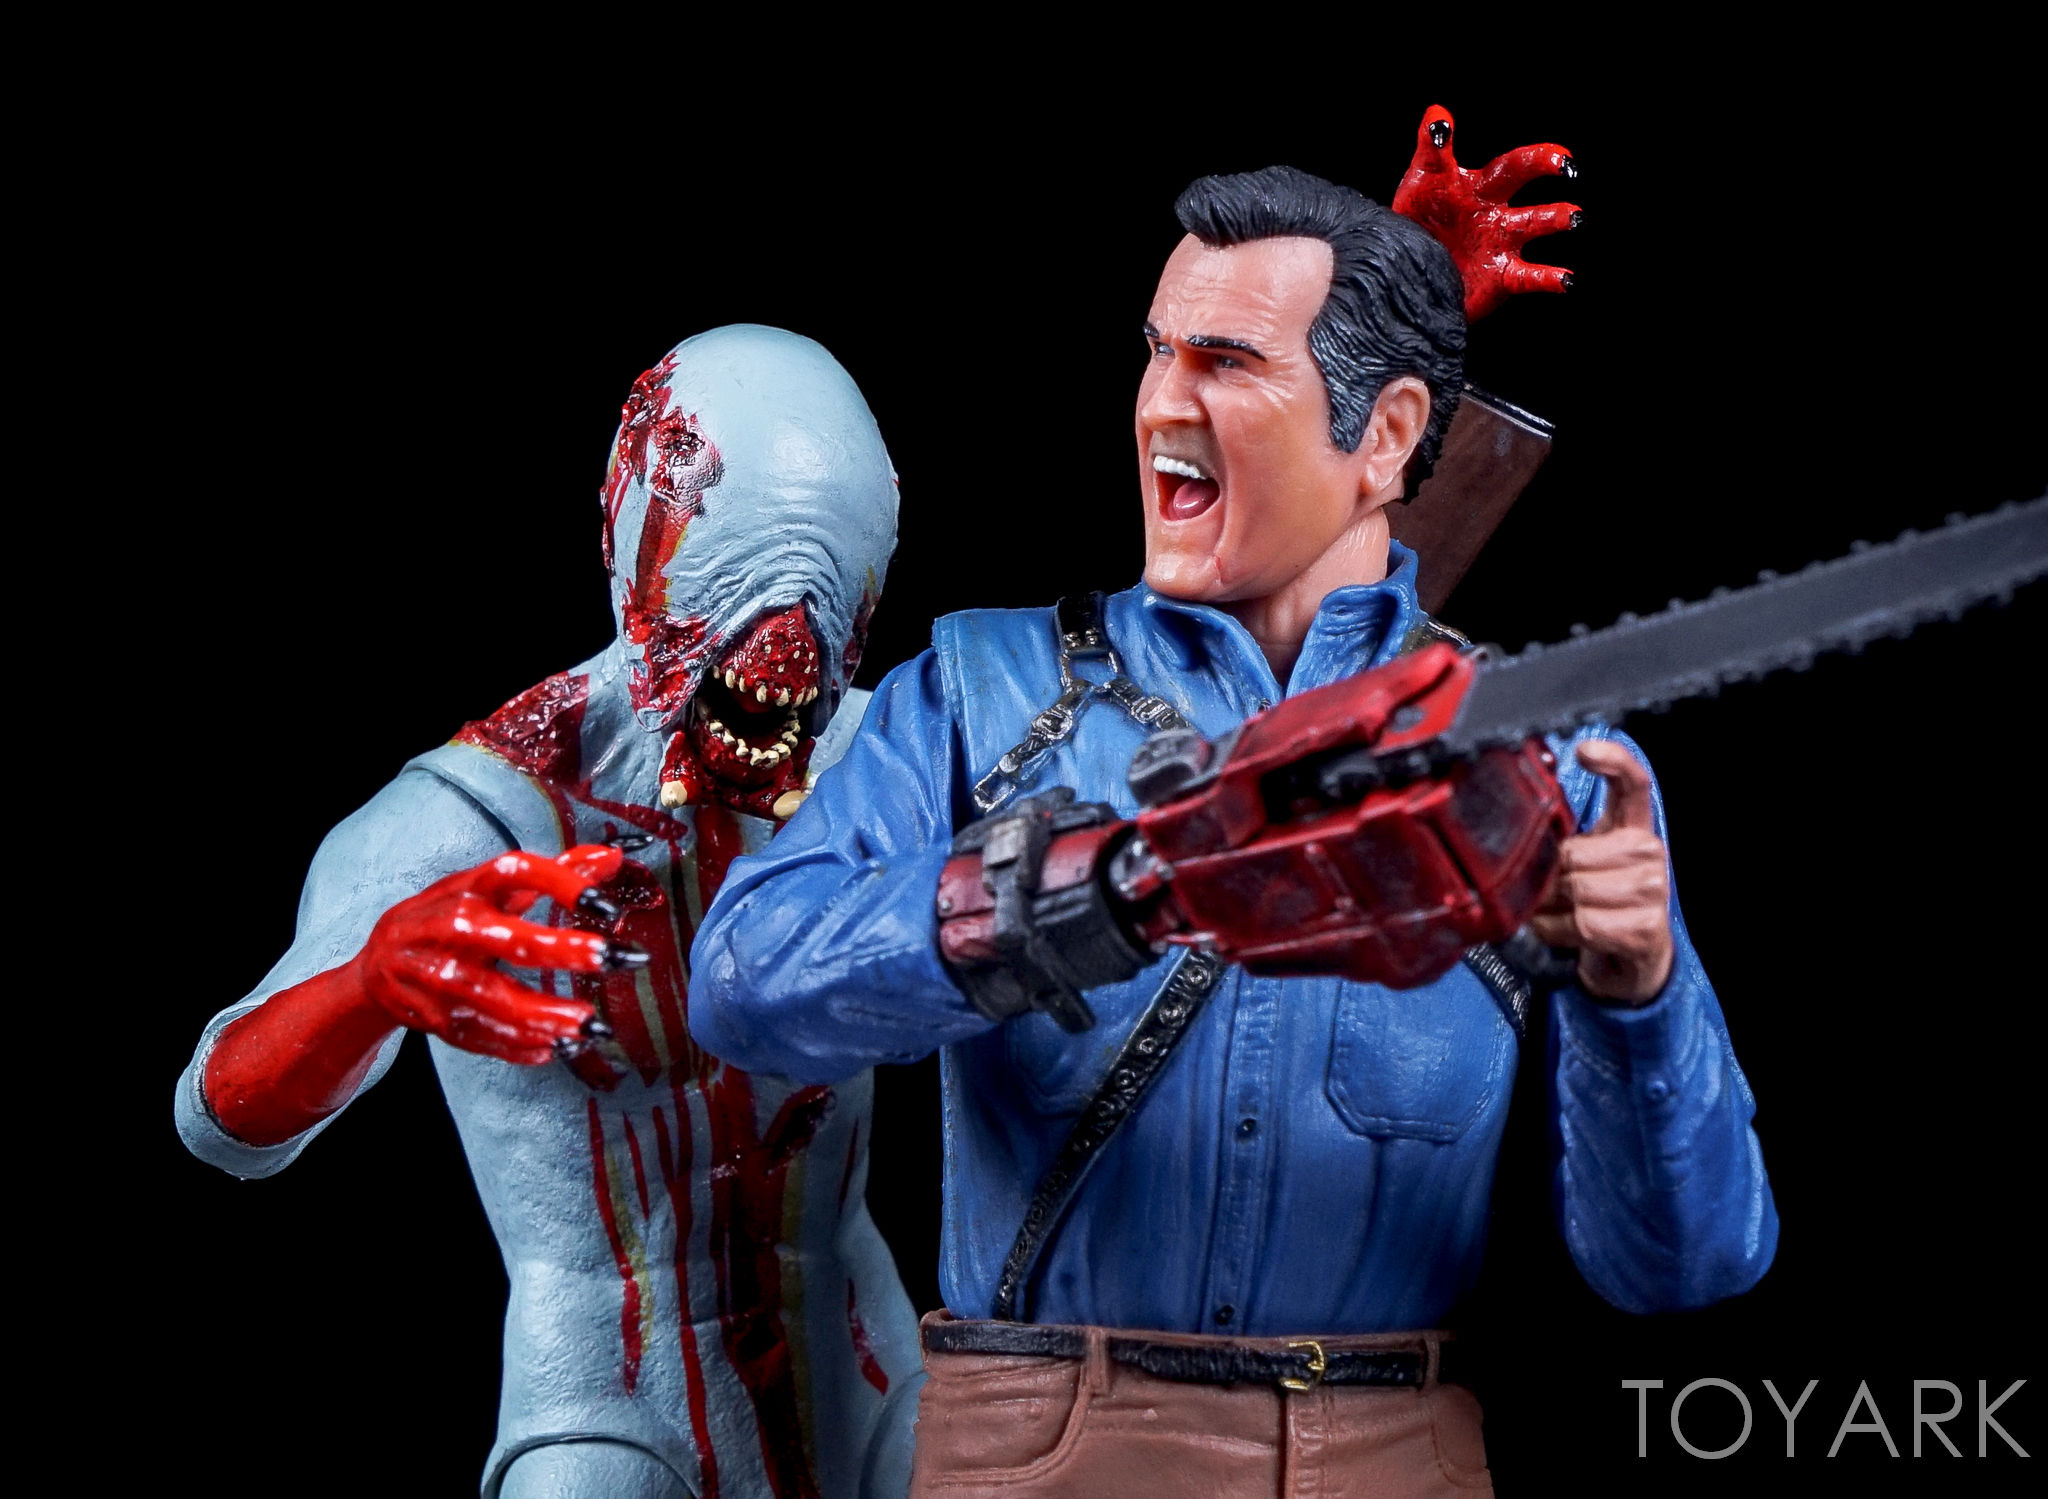 http://news.toyark.com/wp-content/uploads/sites/4/2016/09/Ash-vs-Evil-Dead-Series-1-NECA-125.jpg